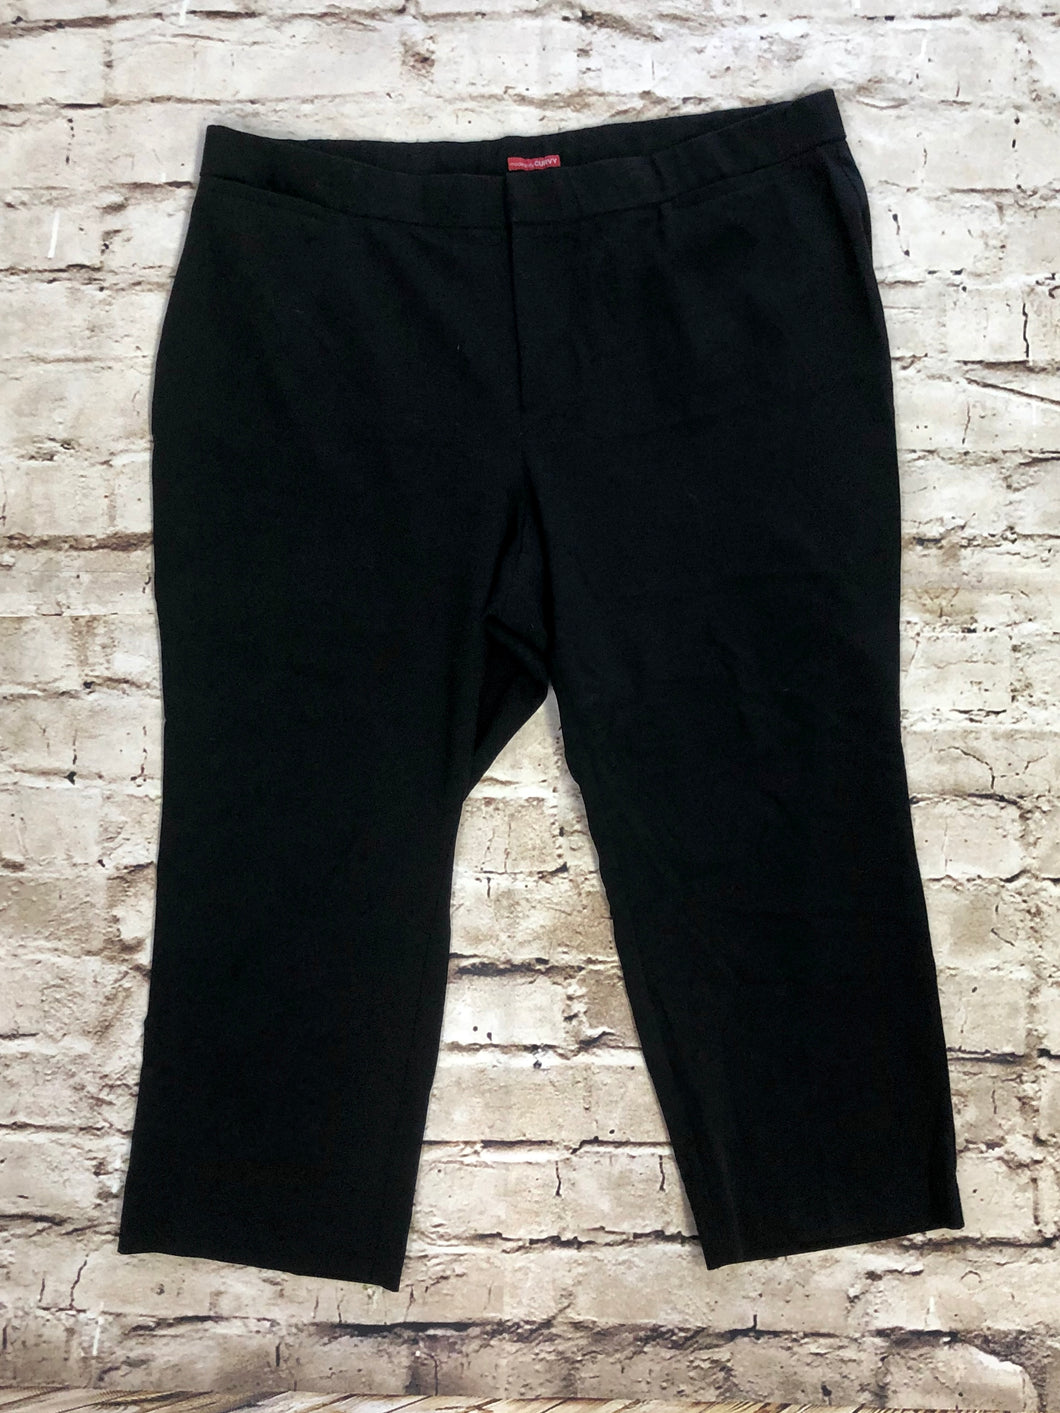 Catherine's petite black slacks with front and back pockets.